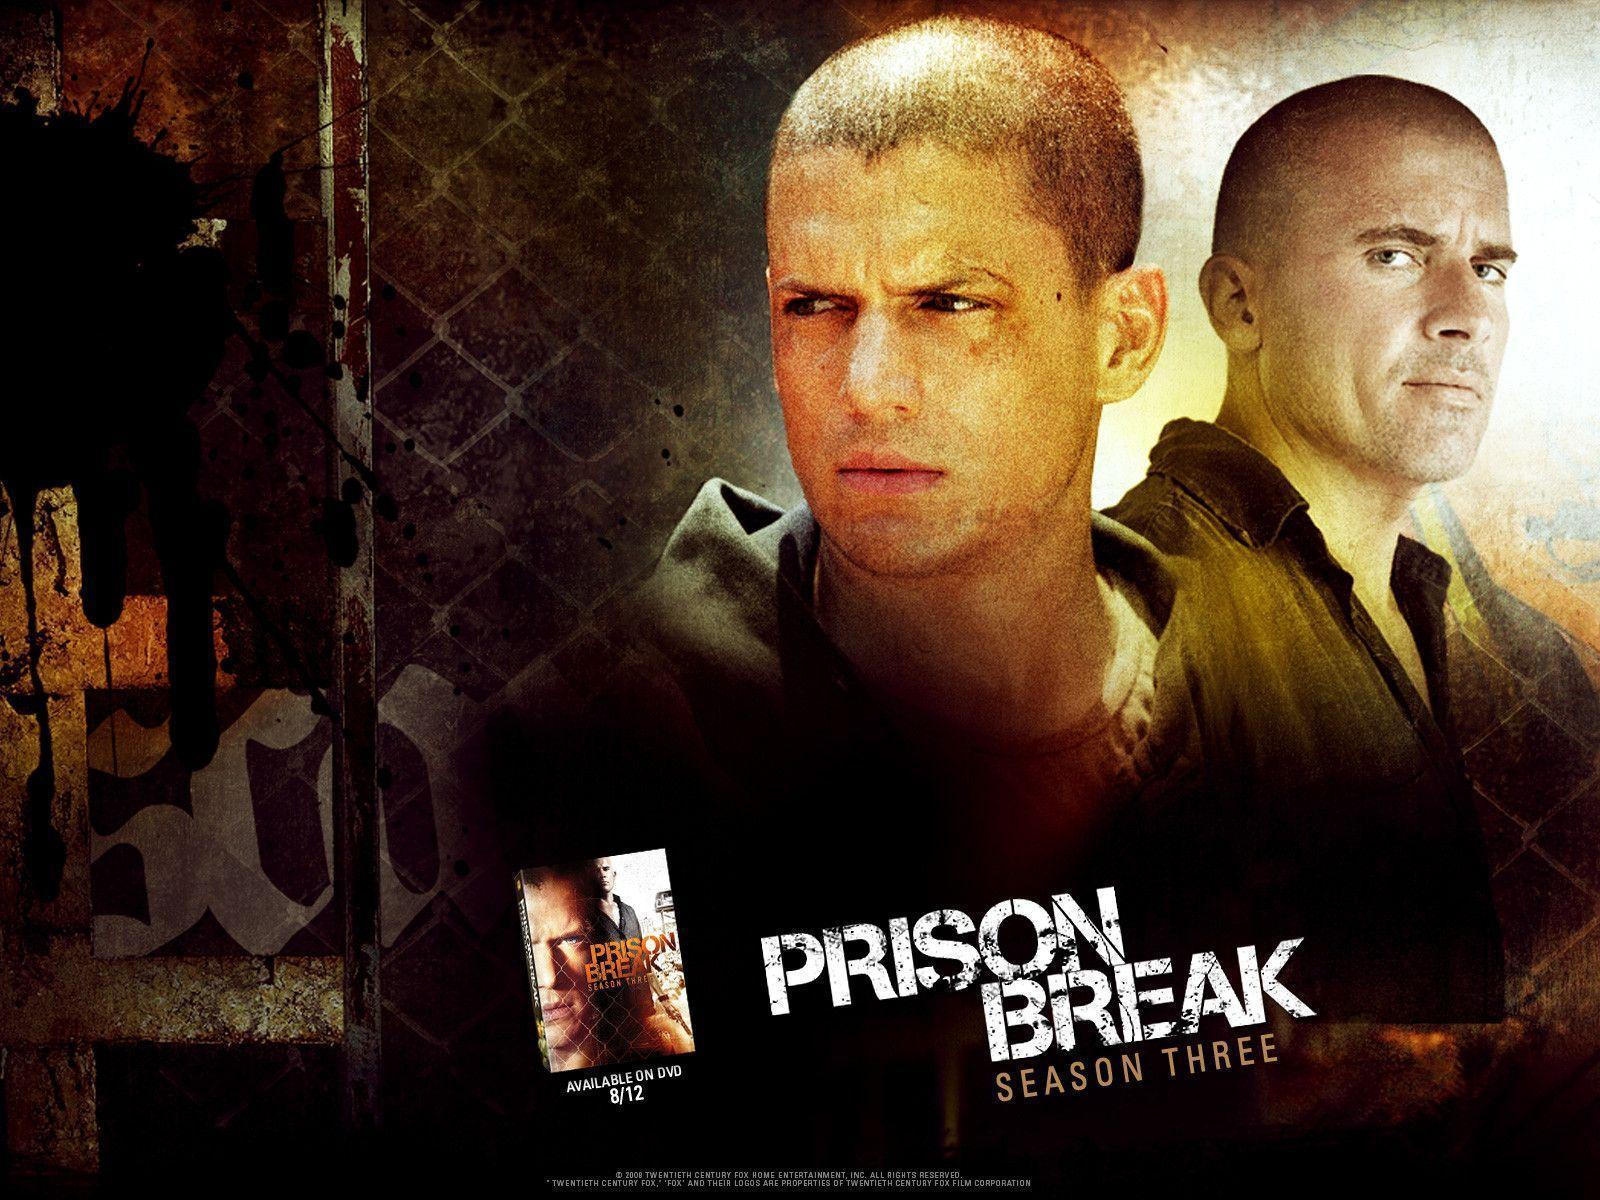 prison break season 4 wallpapers wallpaper cave. Black Bedroom Furniture Sets. Home Design Ideas